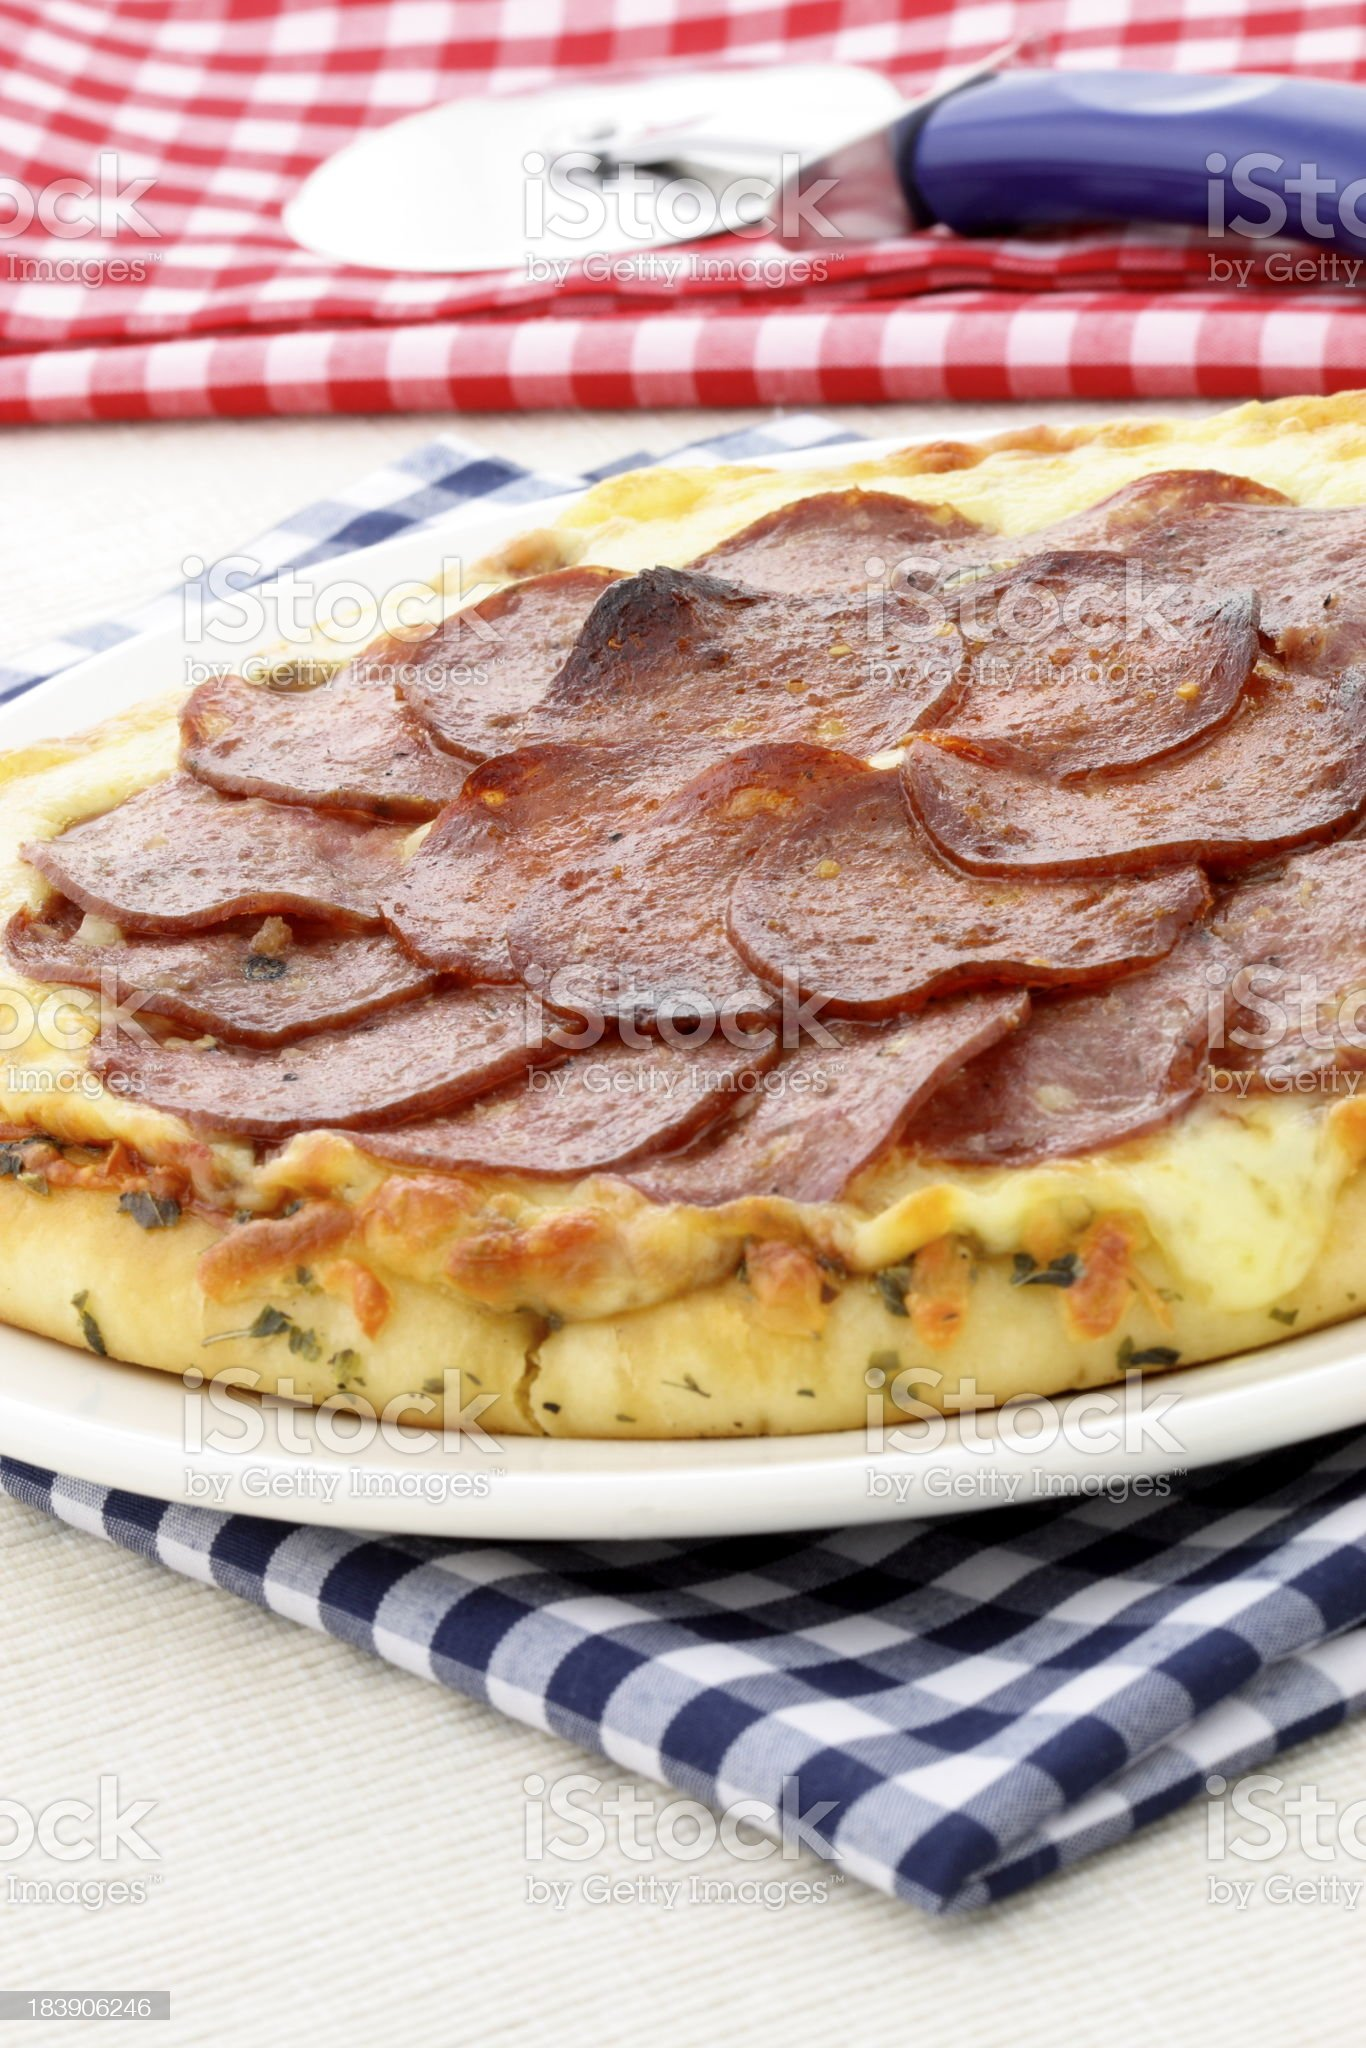 salami and pepperoni pizza royalty-free stock photo